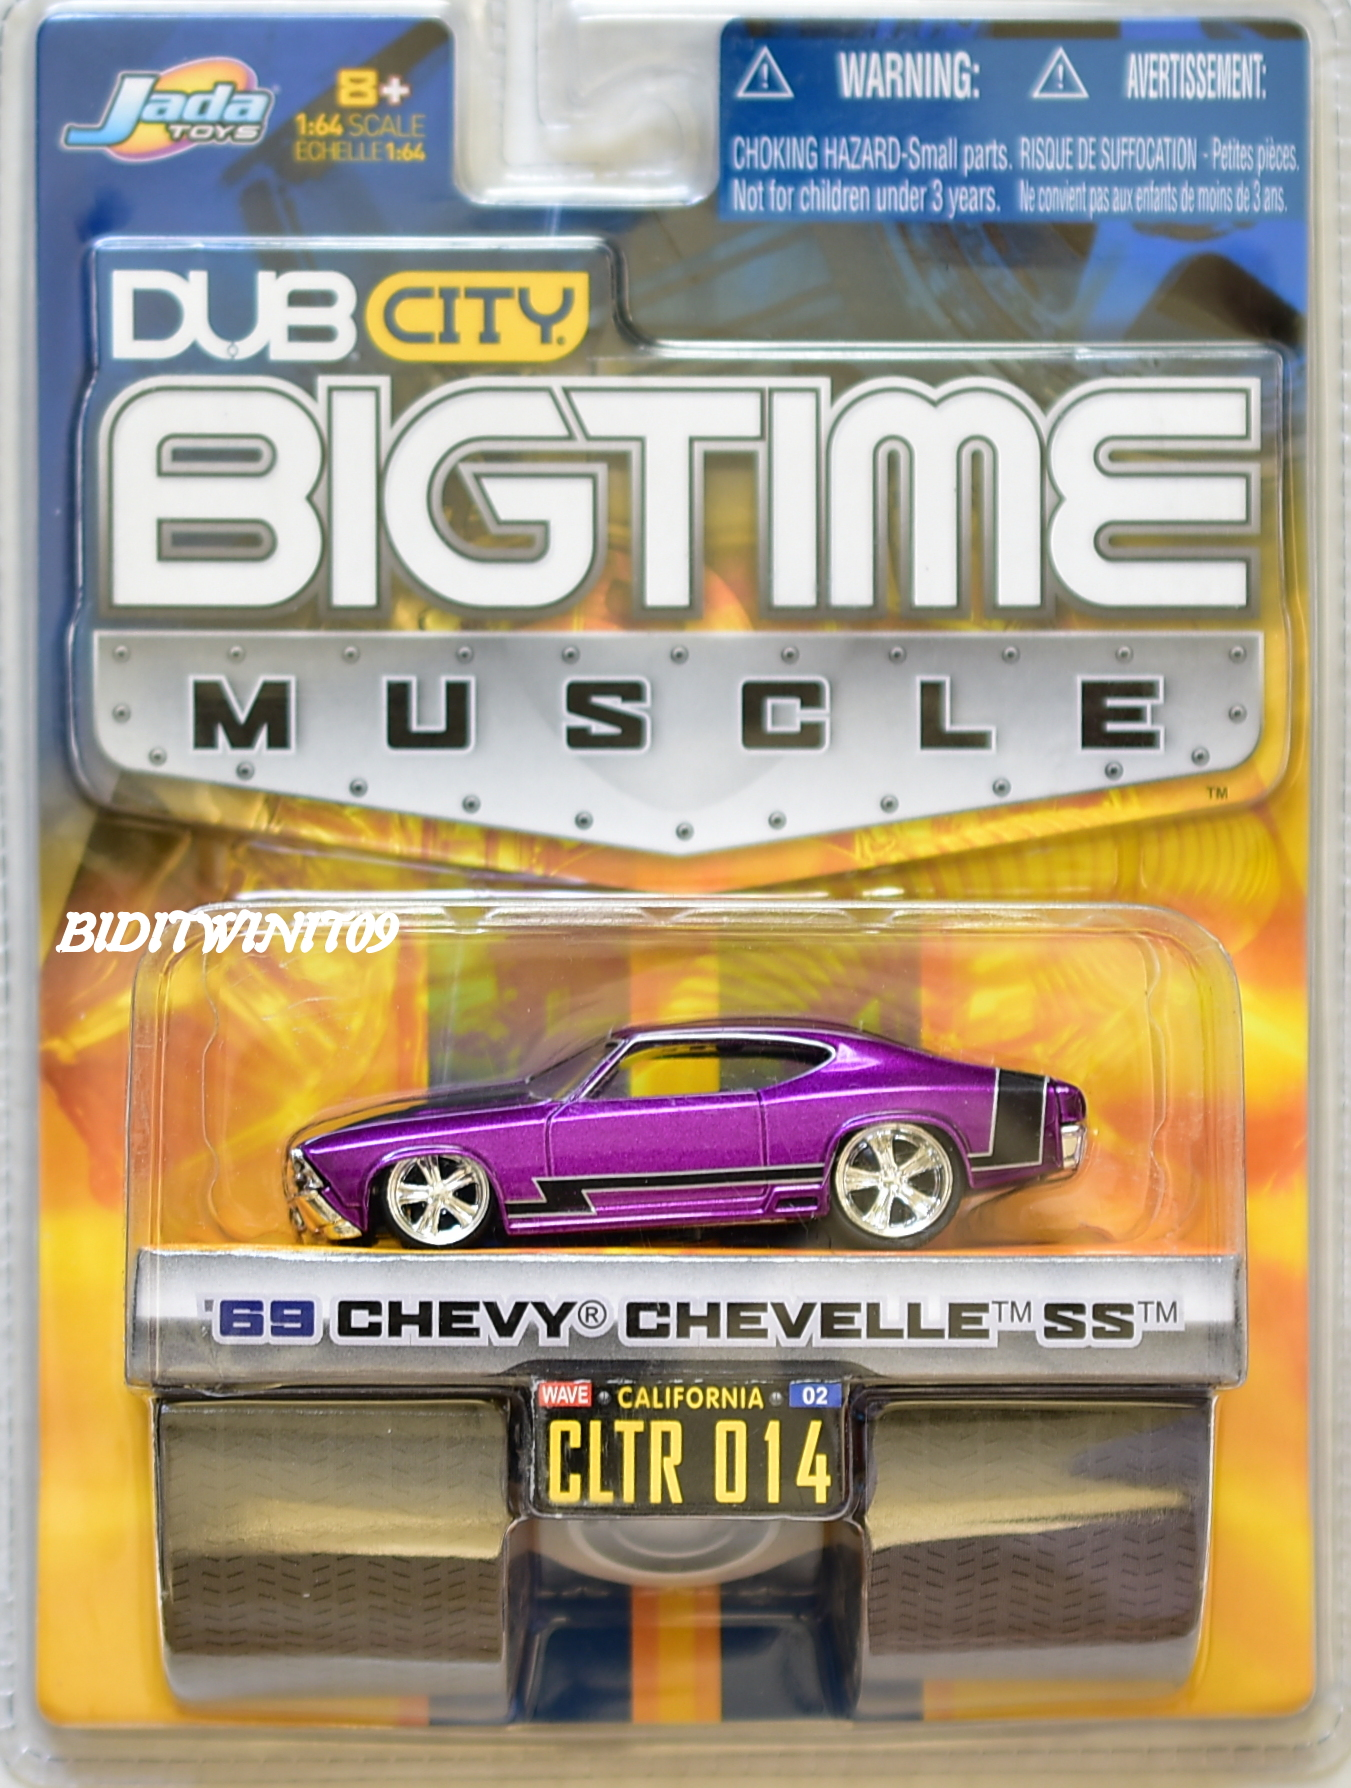 JADA DUB CITY BIGTIME MUSCLE '69 CHEVY CHEVELLE SS CLTR 014 PURPLE